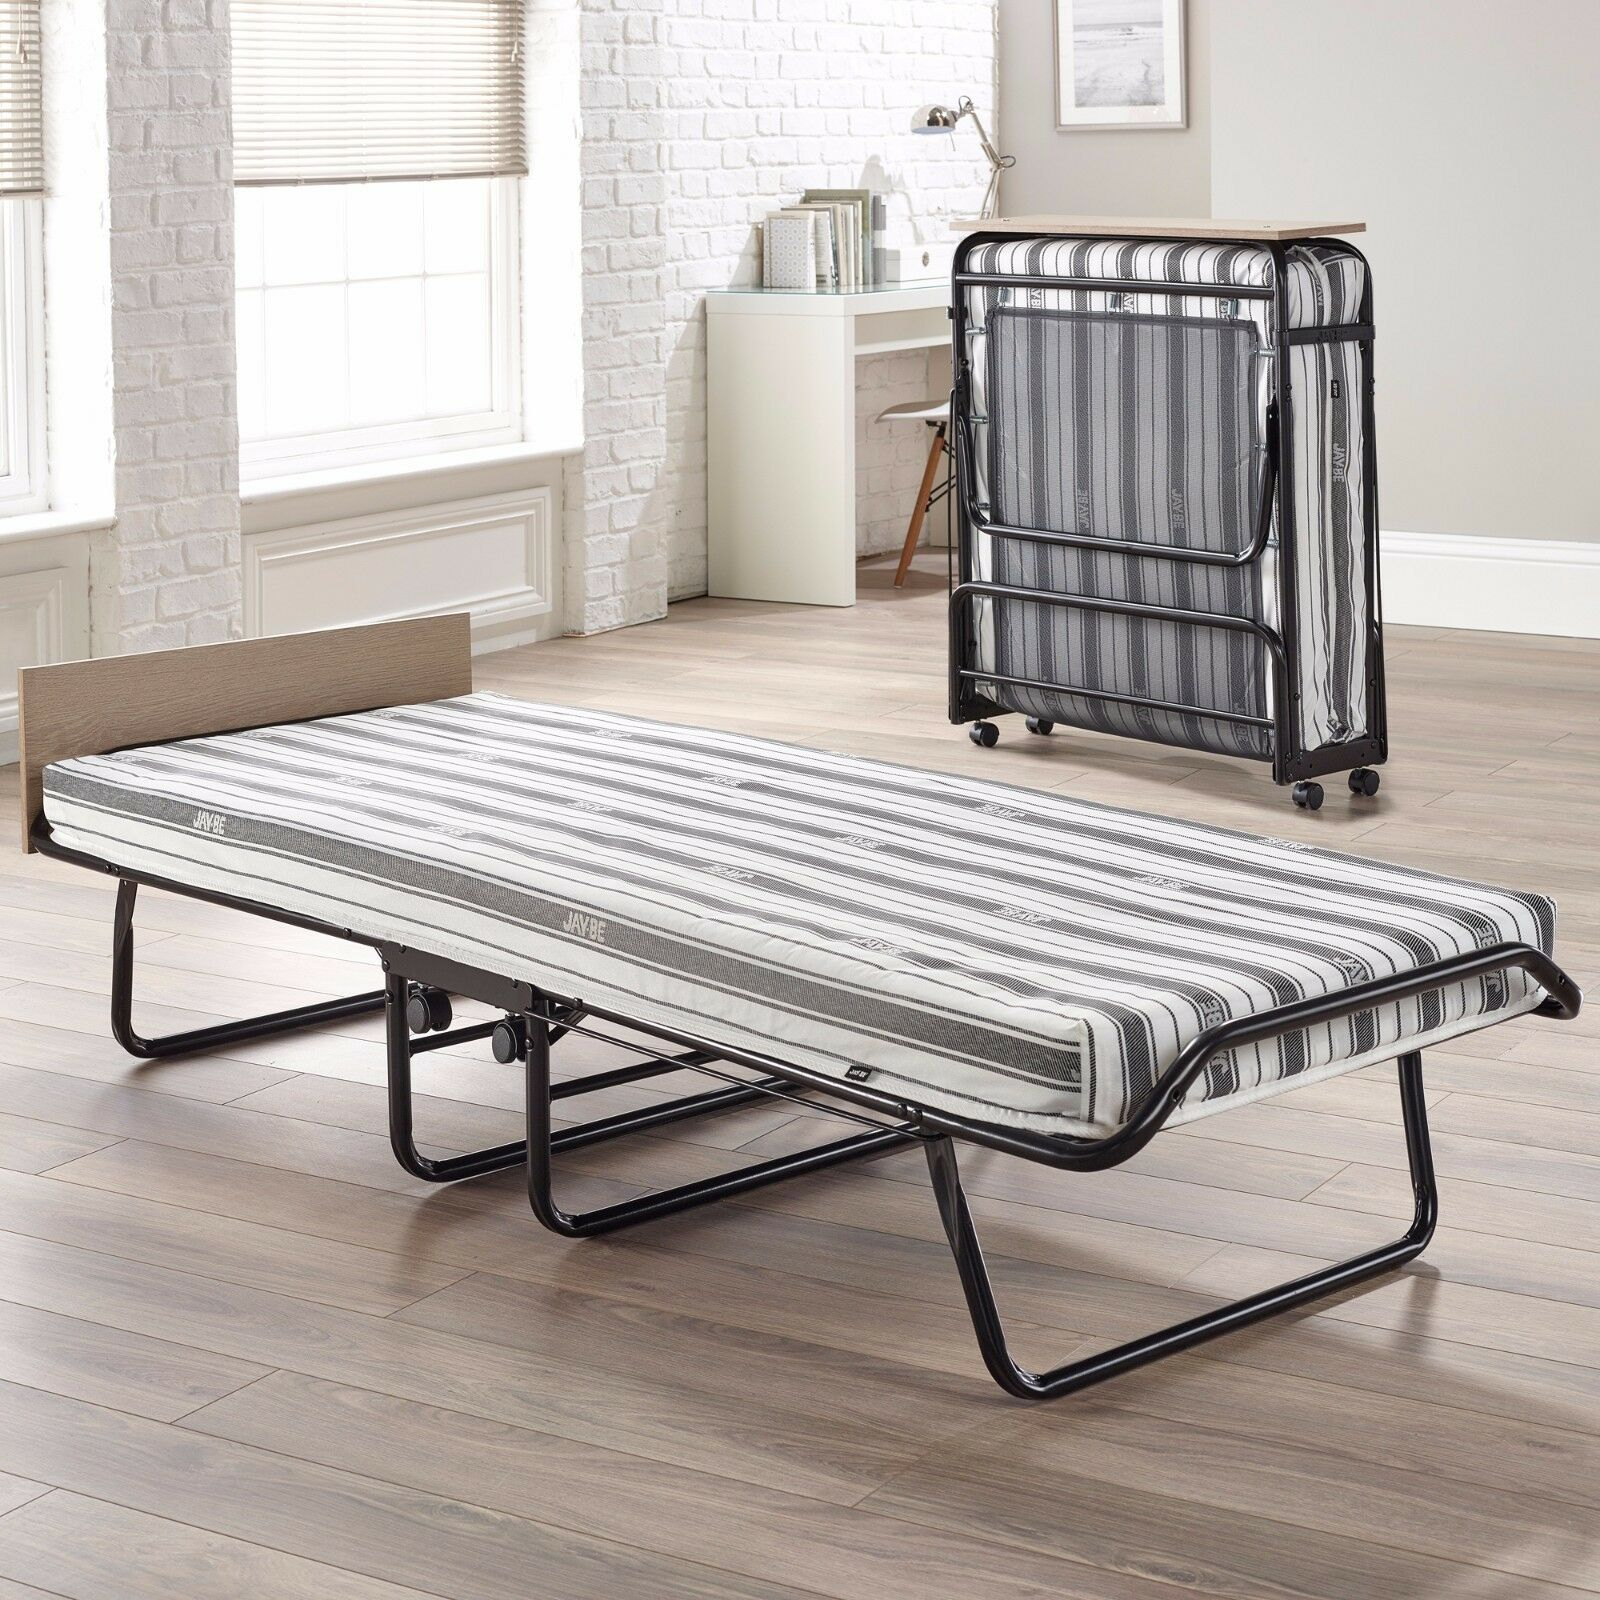 - Jaybe Guest Supreme Single Double Black Folding Bed With Airflow